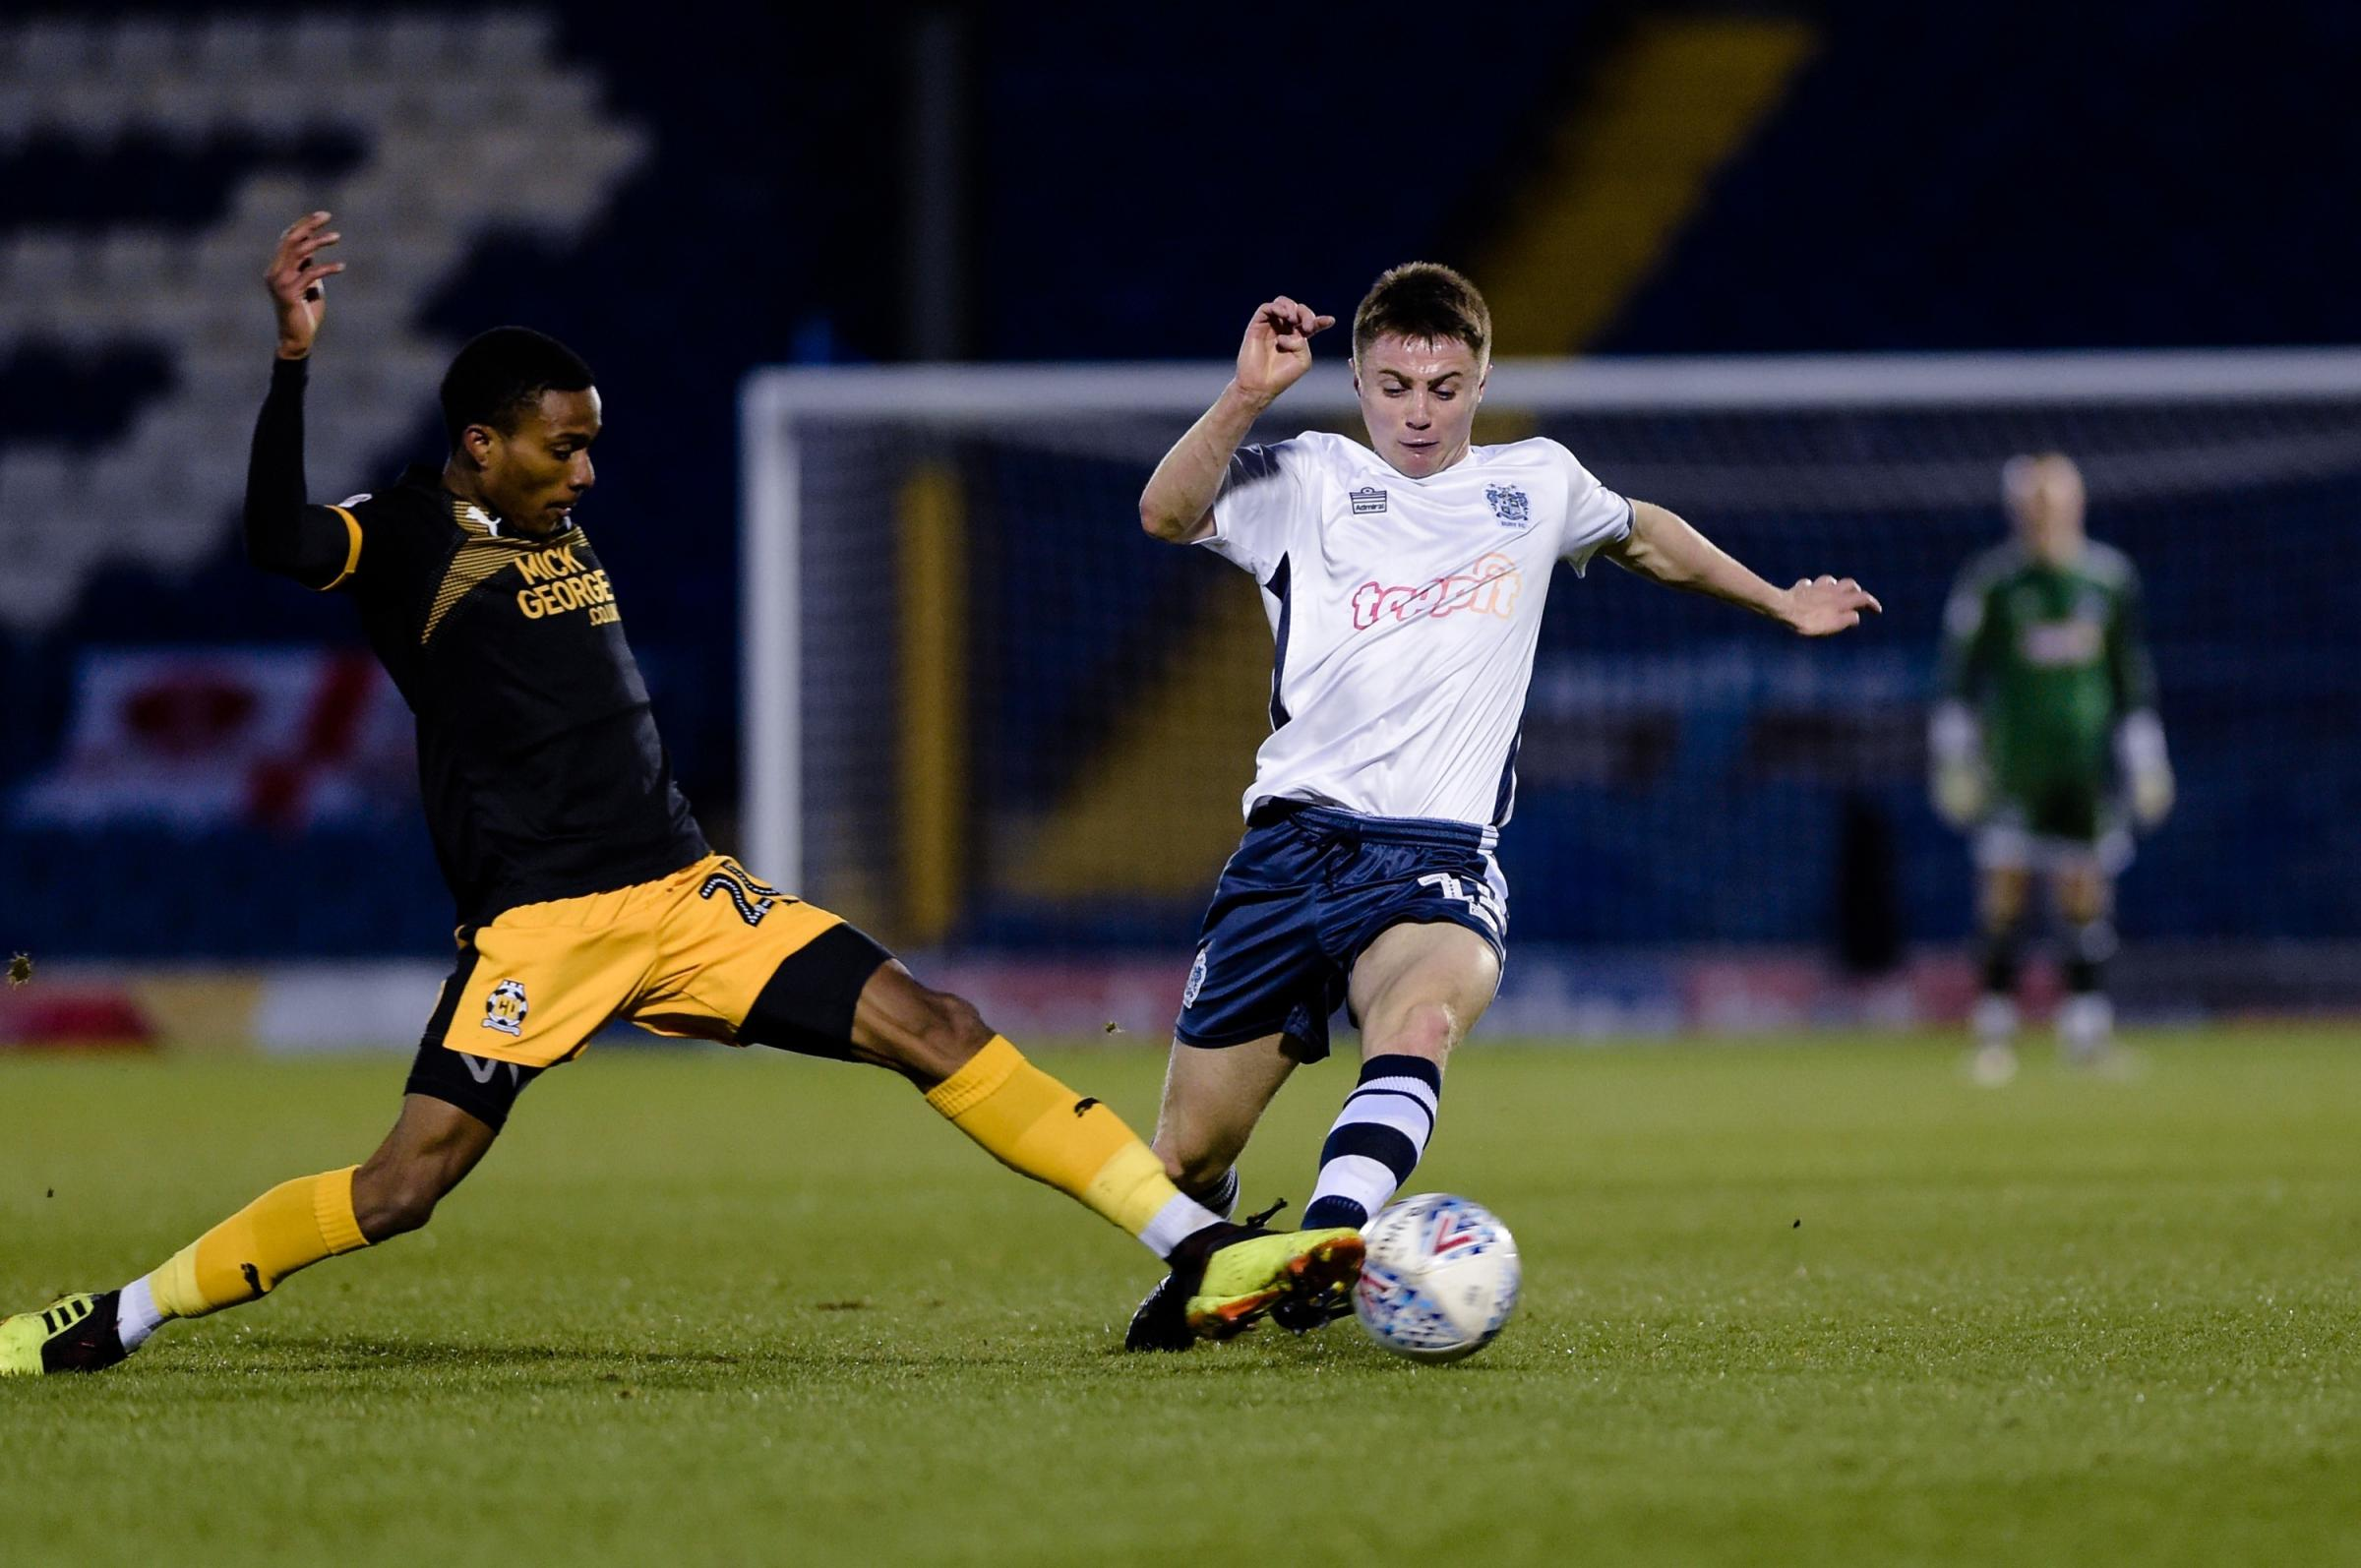 Jordan Rossiter in action during Bury's defeat at home to Cambridge. Picture by Andy Whitehead Photography